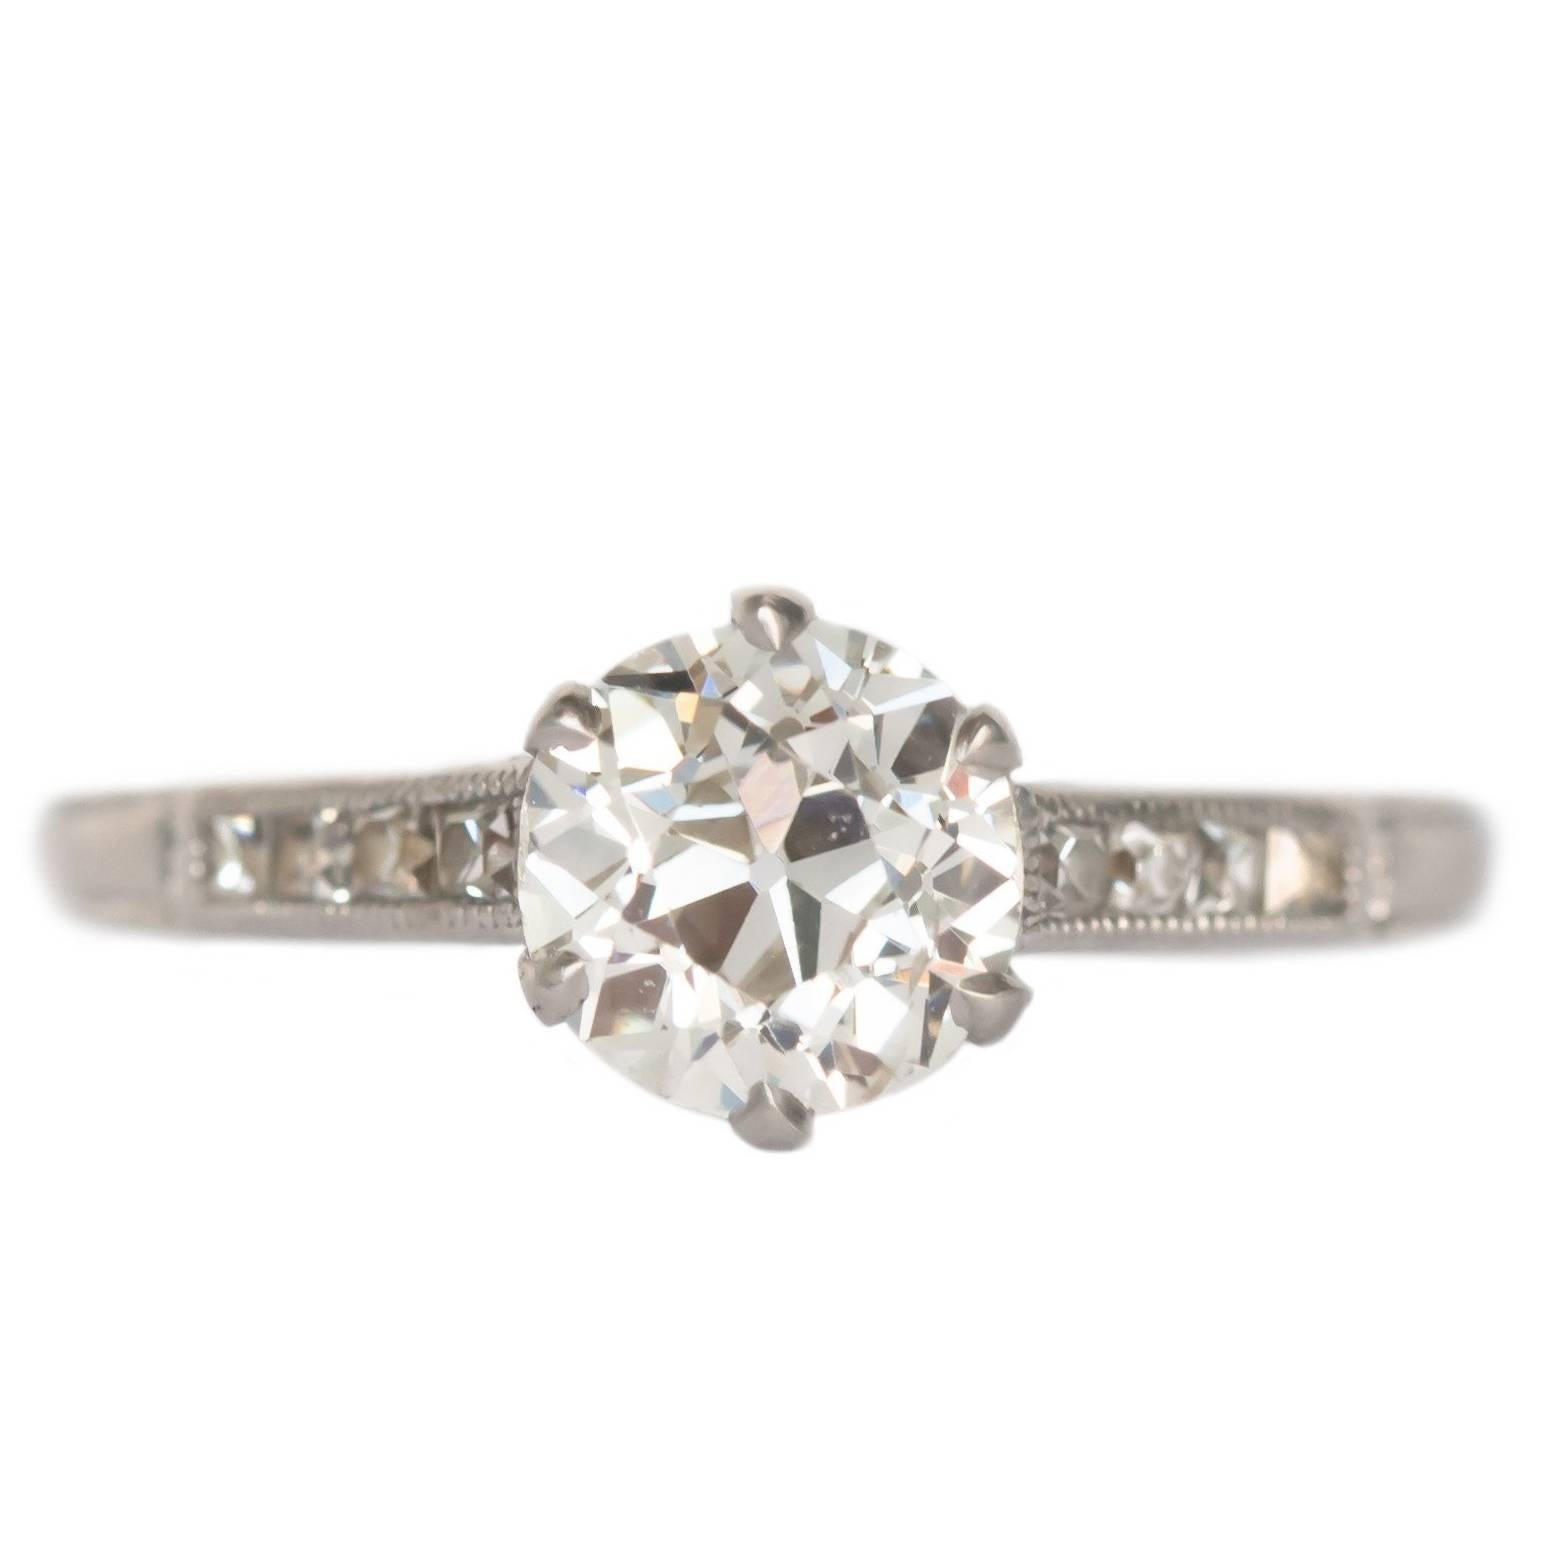 GIA Certified 1.20 Carat Diamond Platinum Engagement Ring